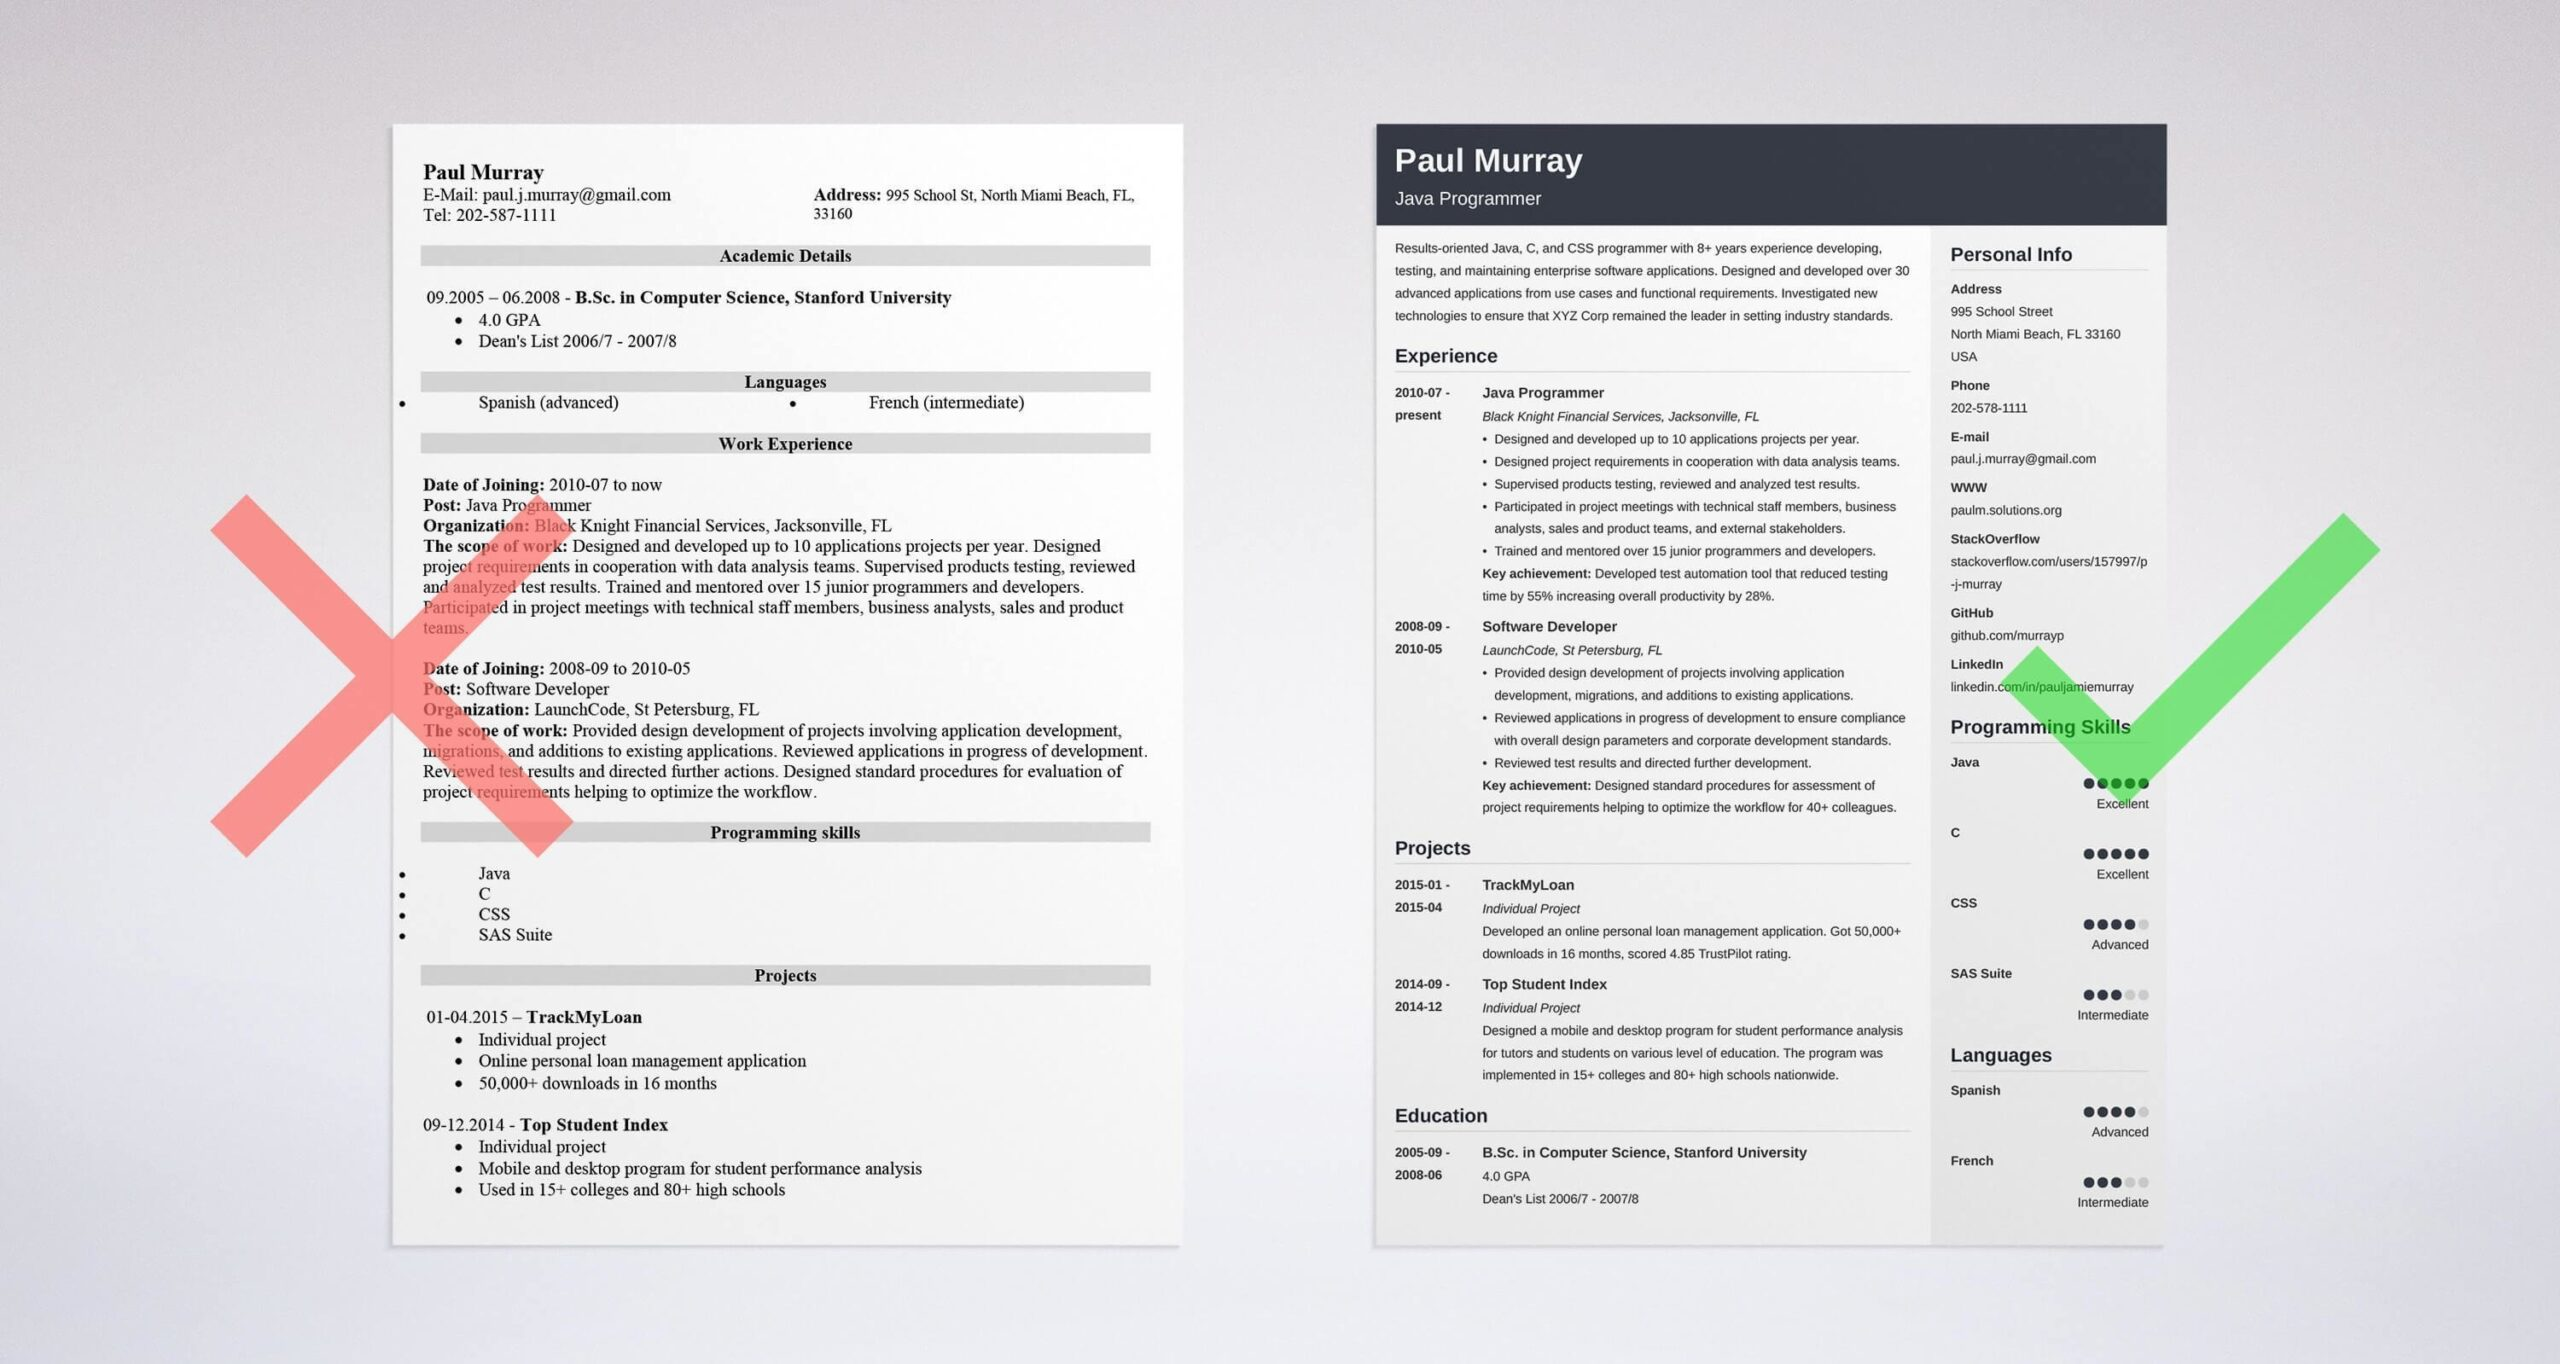 resume dos and don ts checklist for writing programmer donts business analyst sample Resume Checklist For Resume Writing